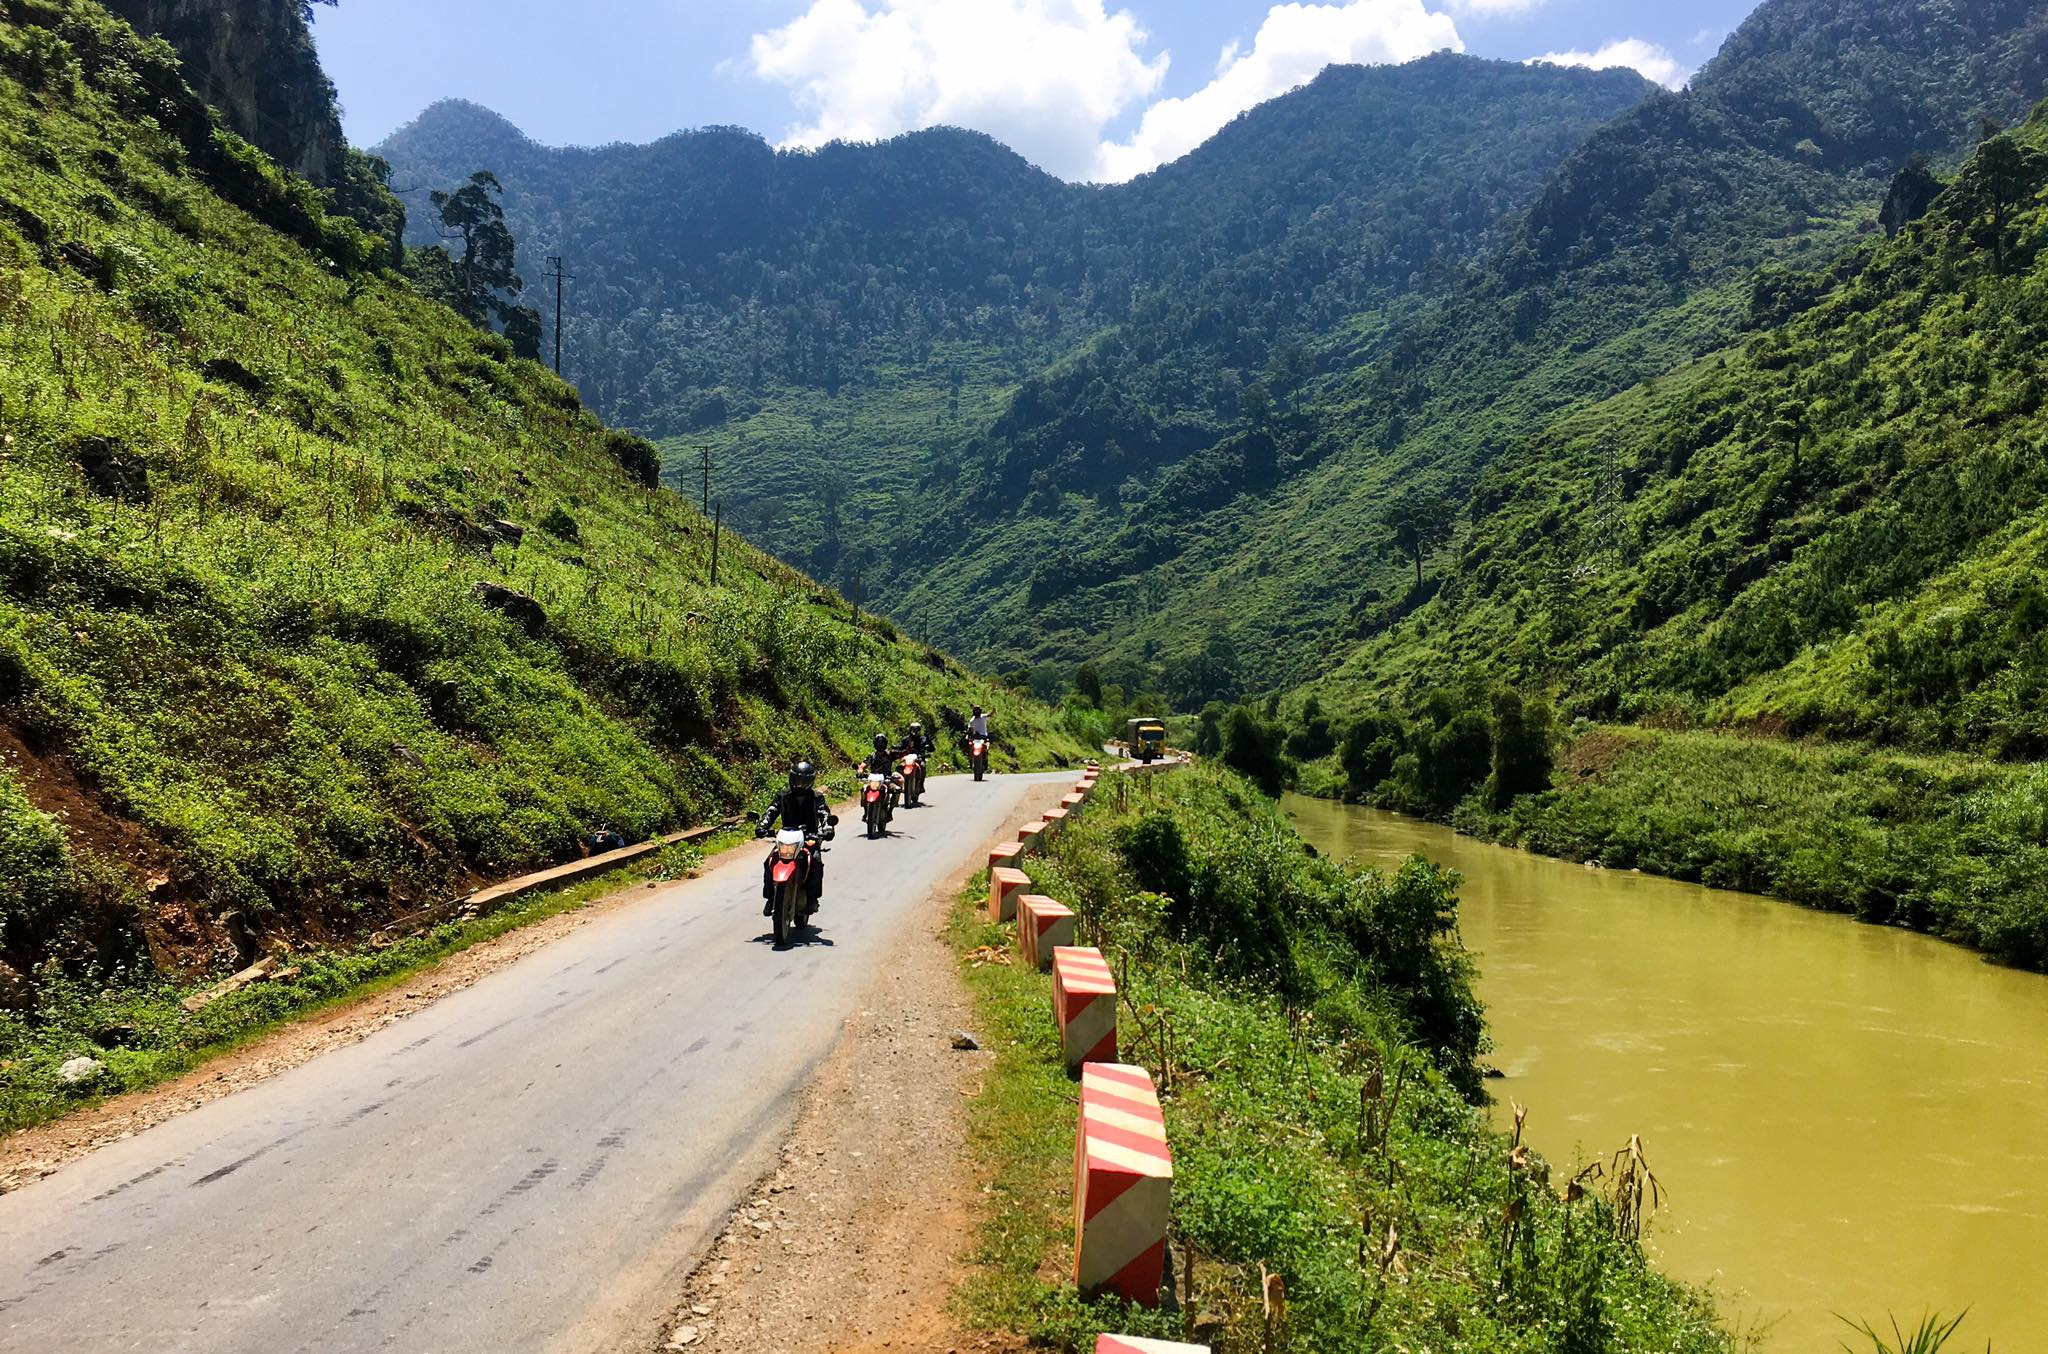 Northern Vietnam Motorbike Tour to Sapa, Ha Giang, Bac Kan